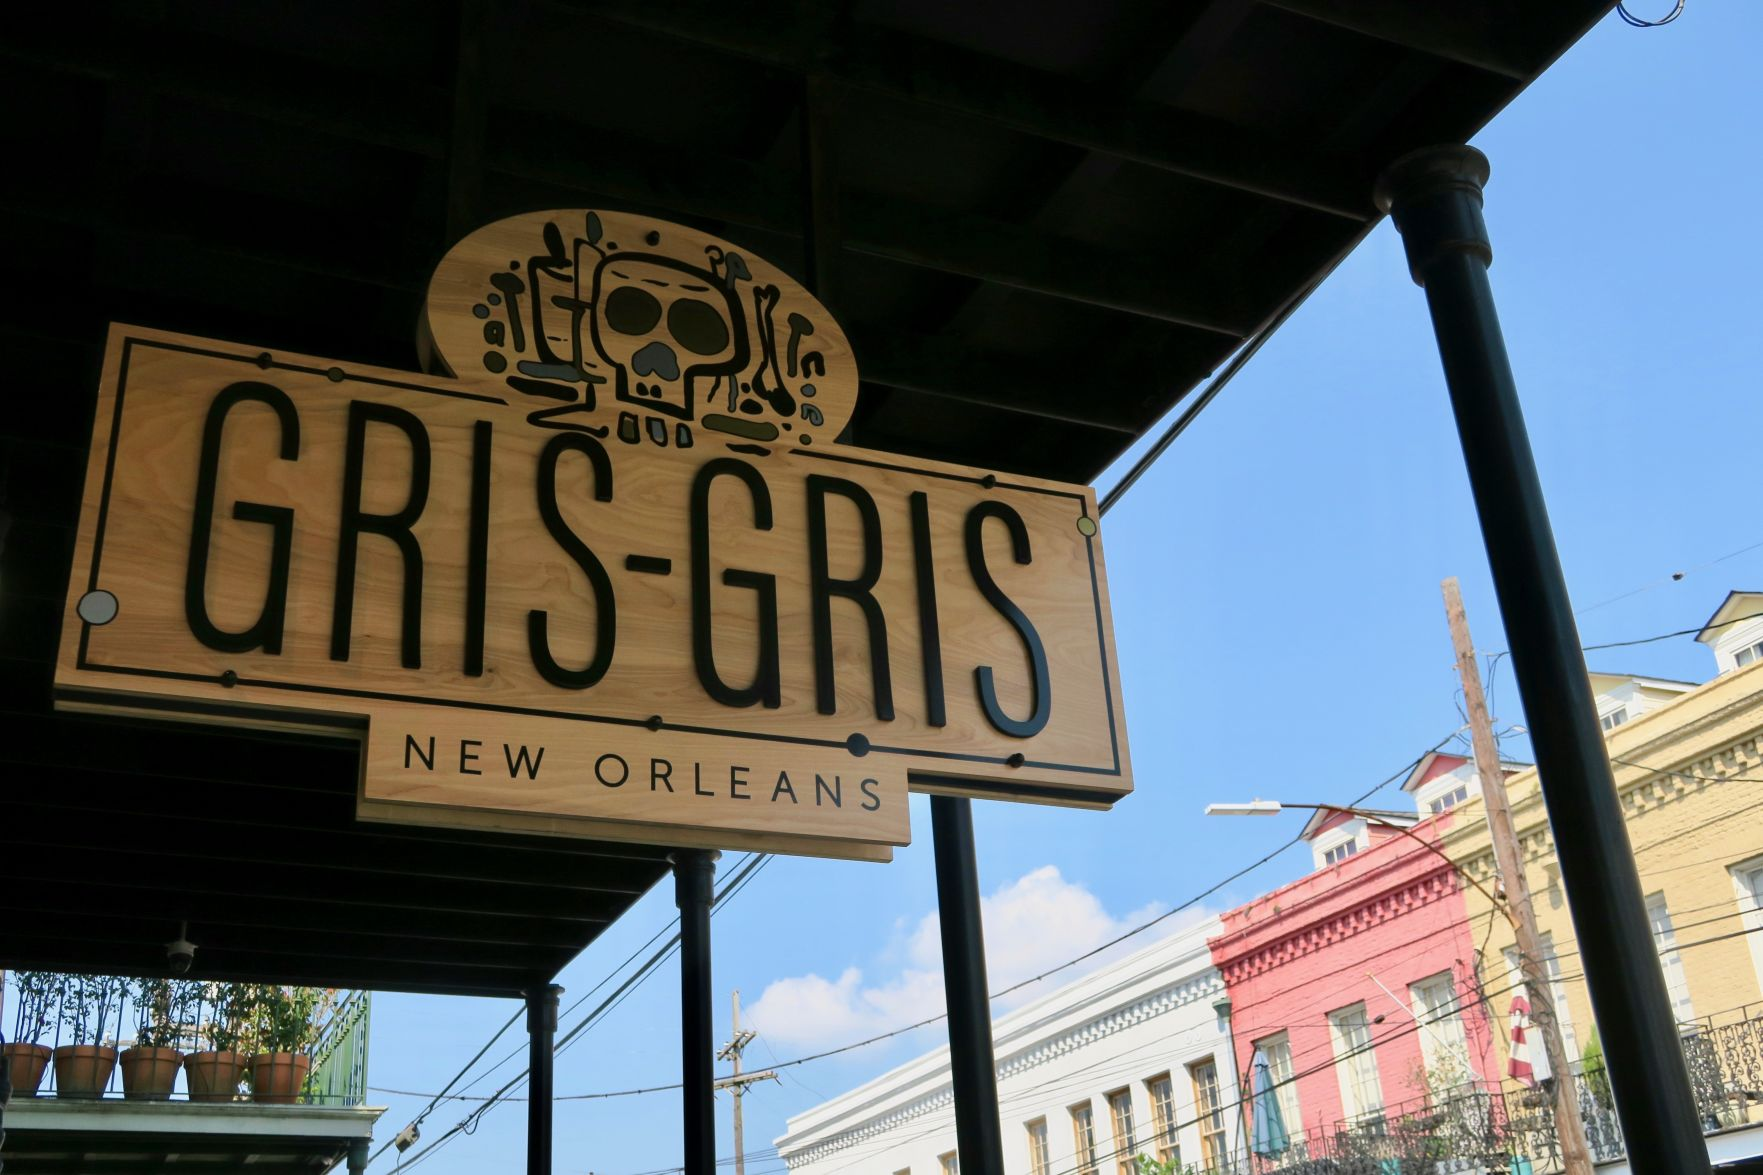 Gris Gris Restaurant New Orleans, an ABO client of Webre Consulting